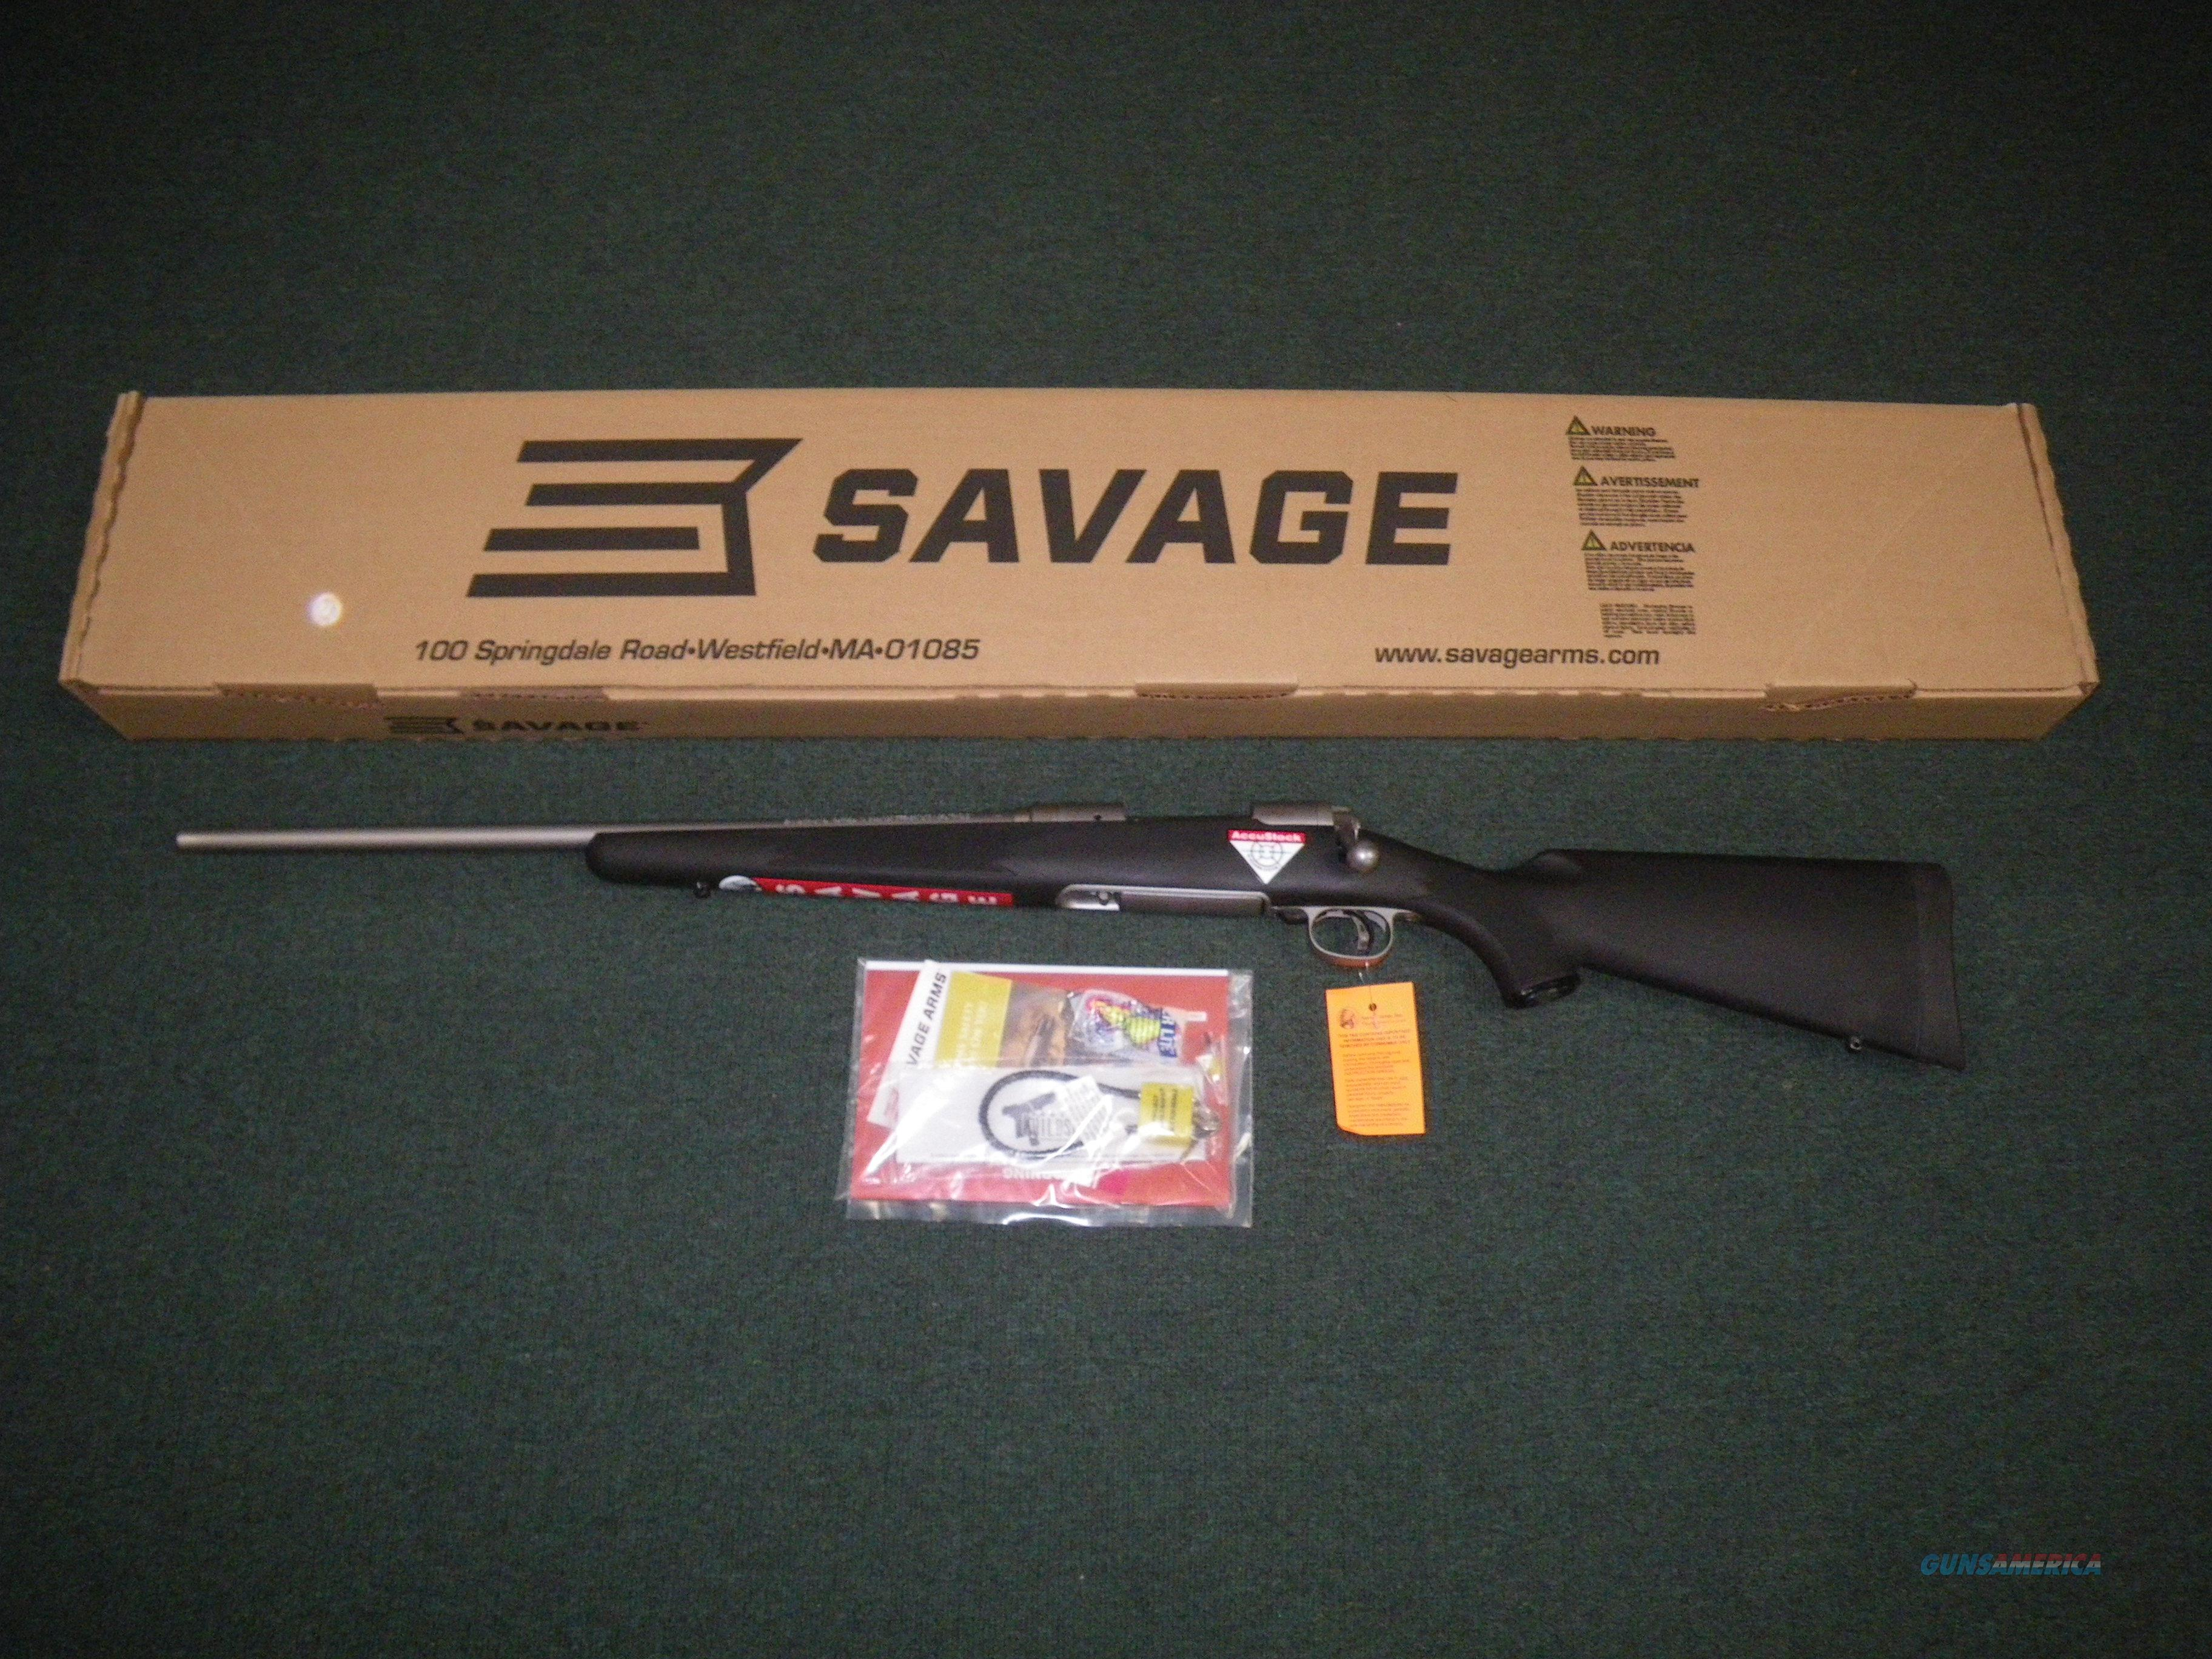 "Savage 16/116 FLCSS LH Stainless 270 Win 22"" NEW #22201  Guns > Rifles > Savage Rifles > 16/116"